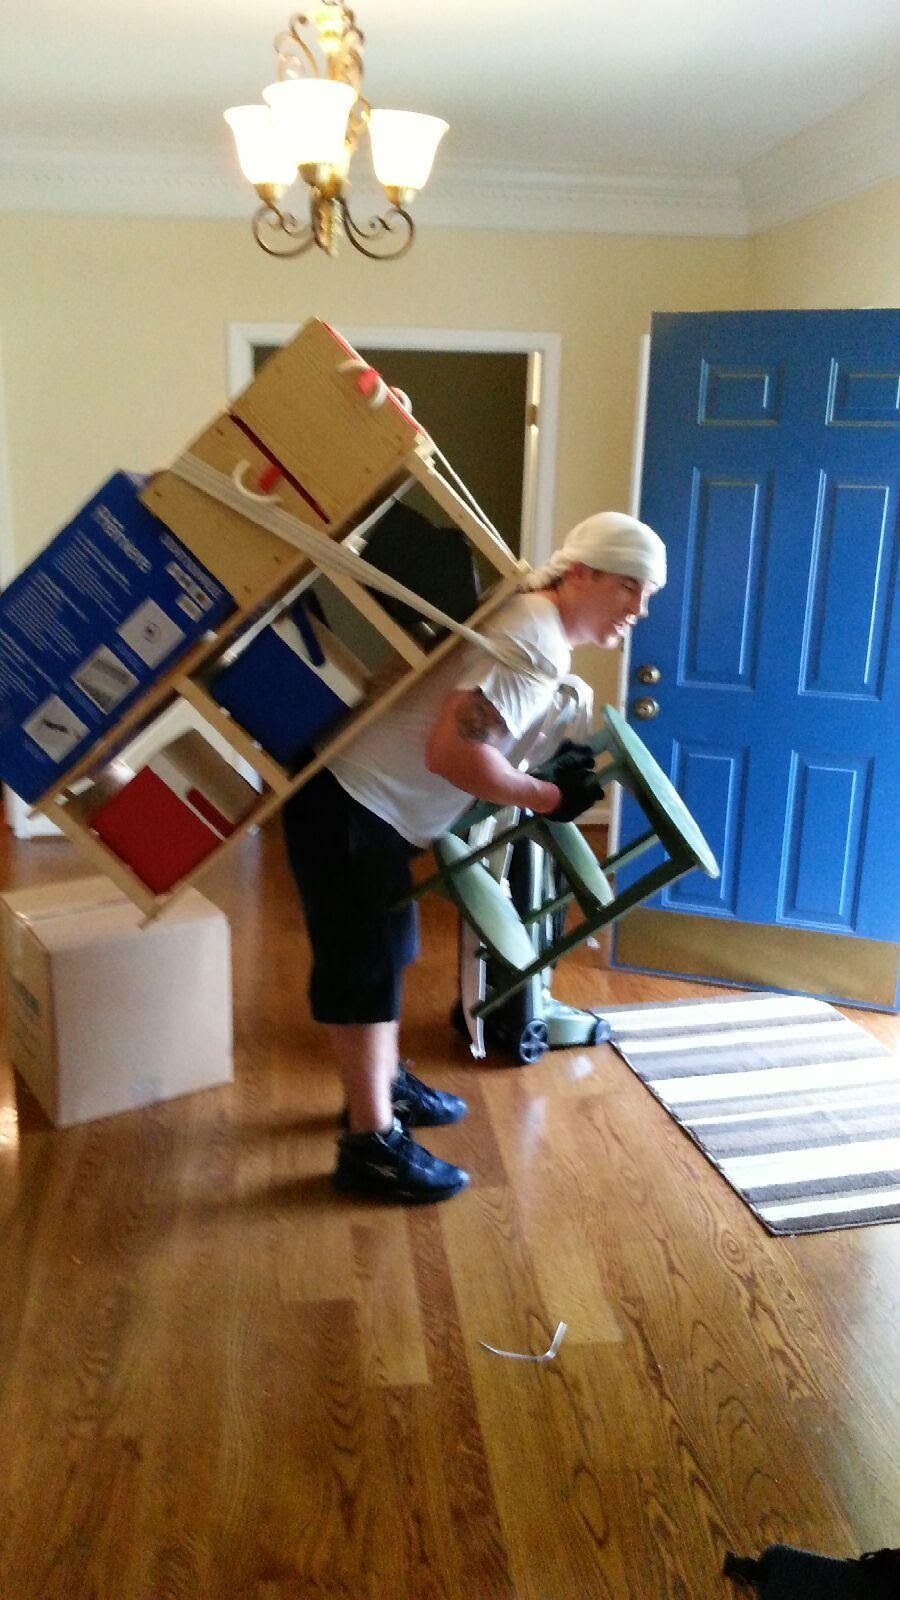 Great Move Movers - moving company    Photo 1 of 2   Address: 3223 N Talbot Ave #6, Erlanger, KY 41018, USA   Phone: (513) 460-7106